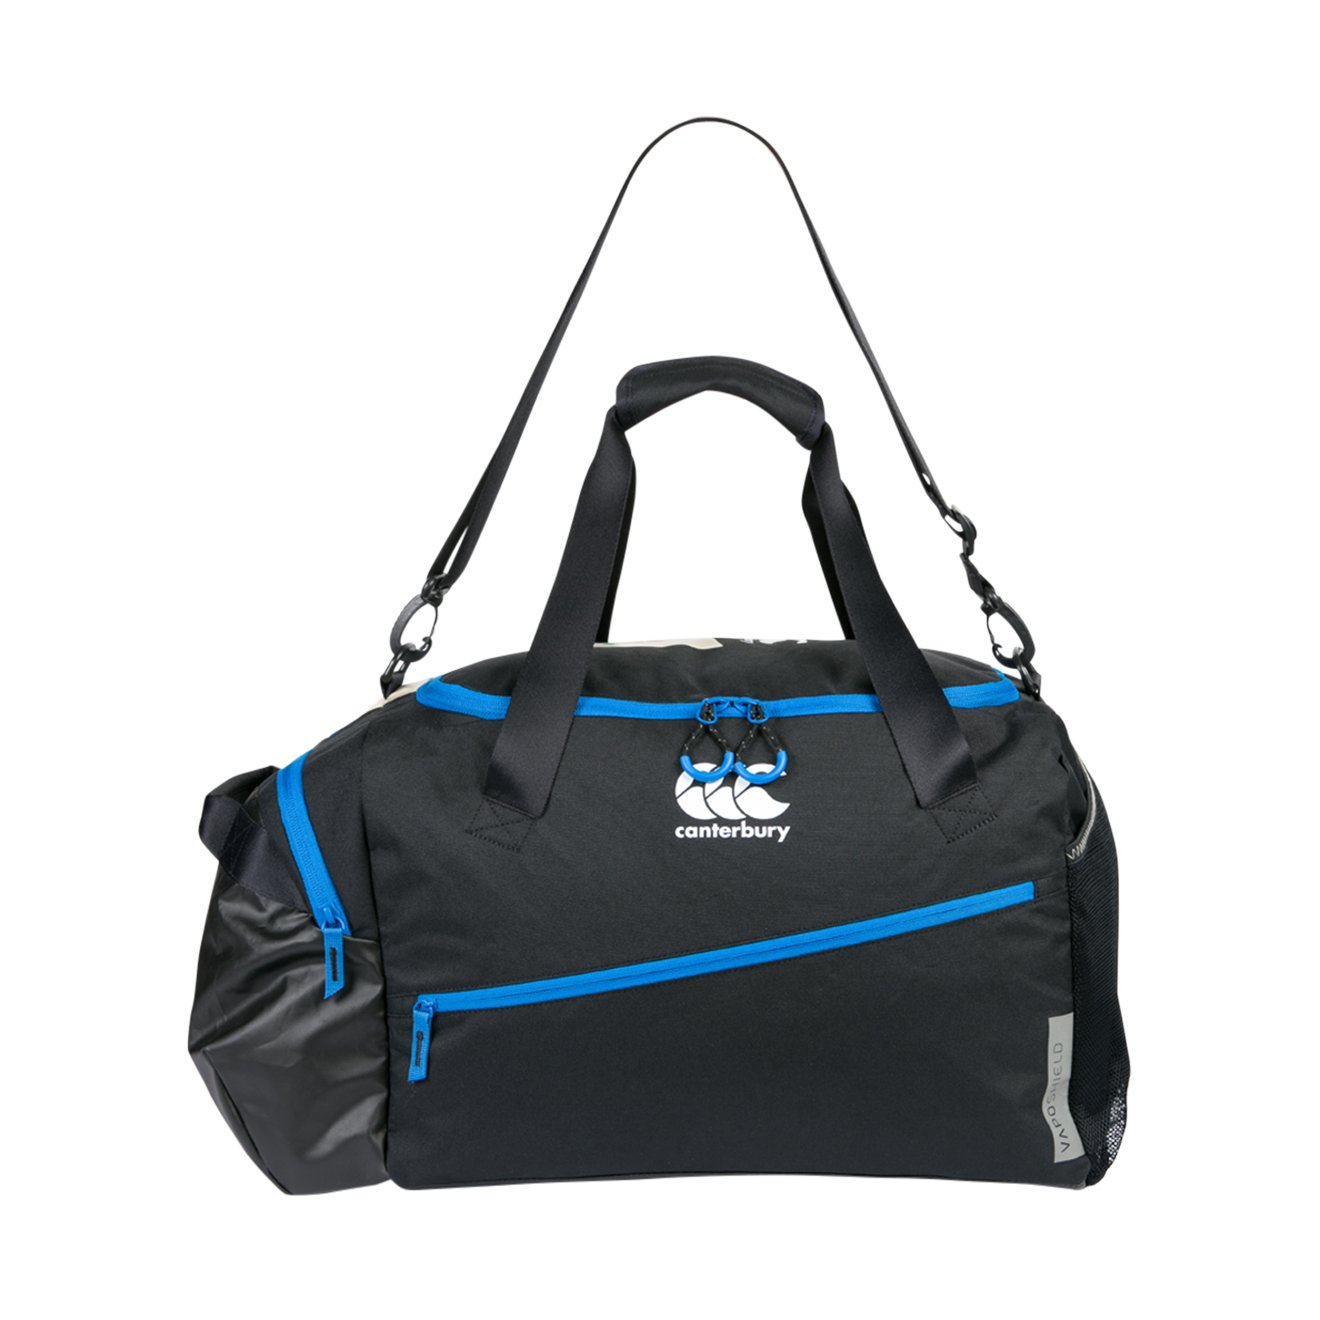 Canterbury 2018-2019 England Rugby Medium Sports Bag (Anthracite)